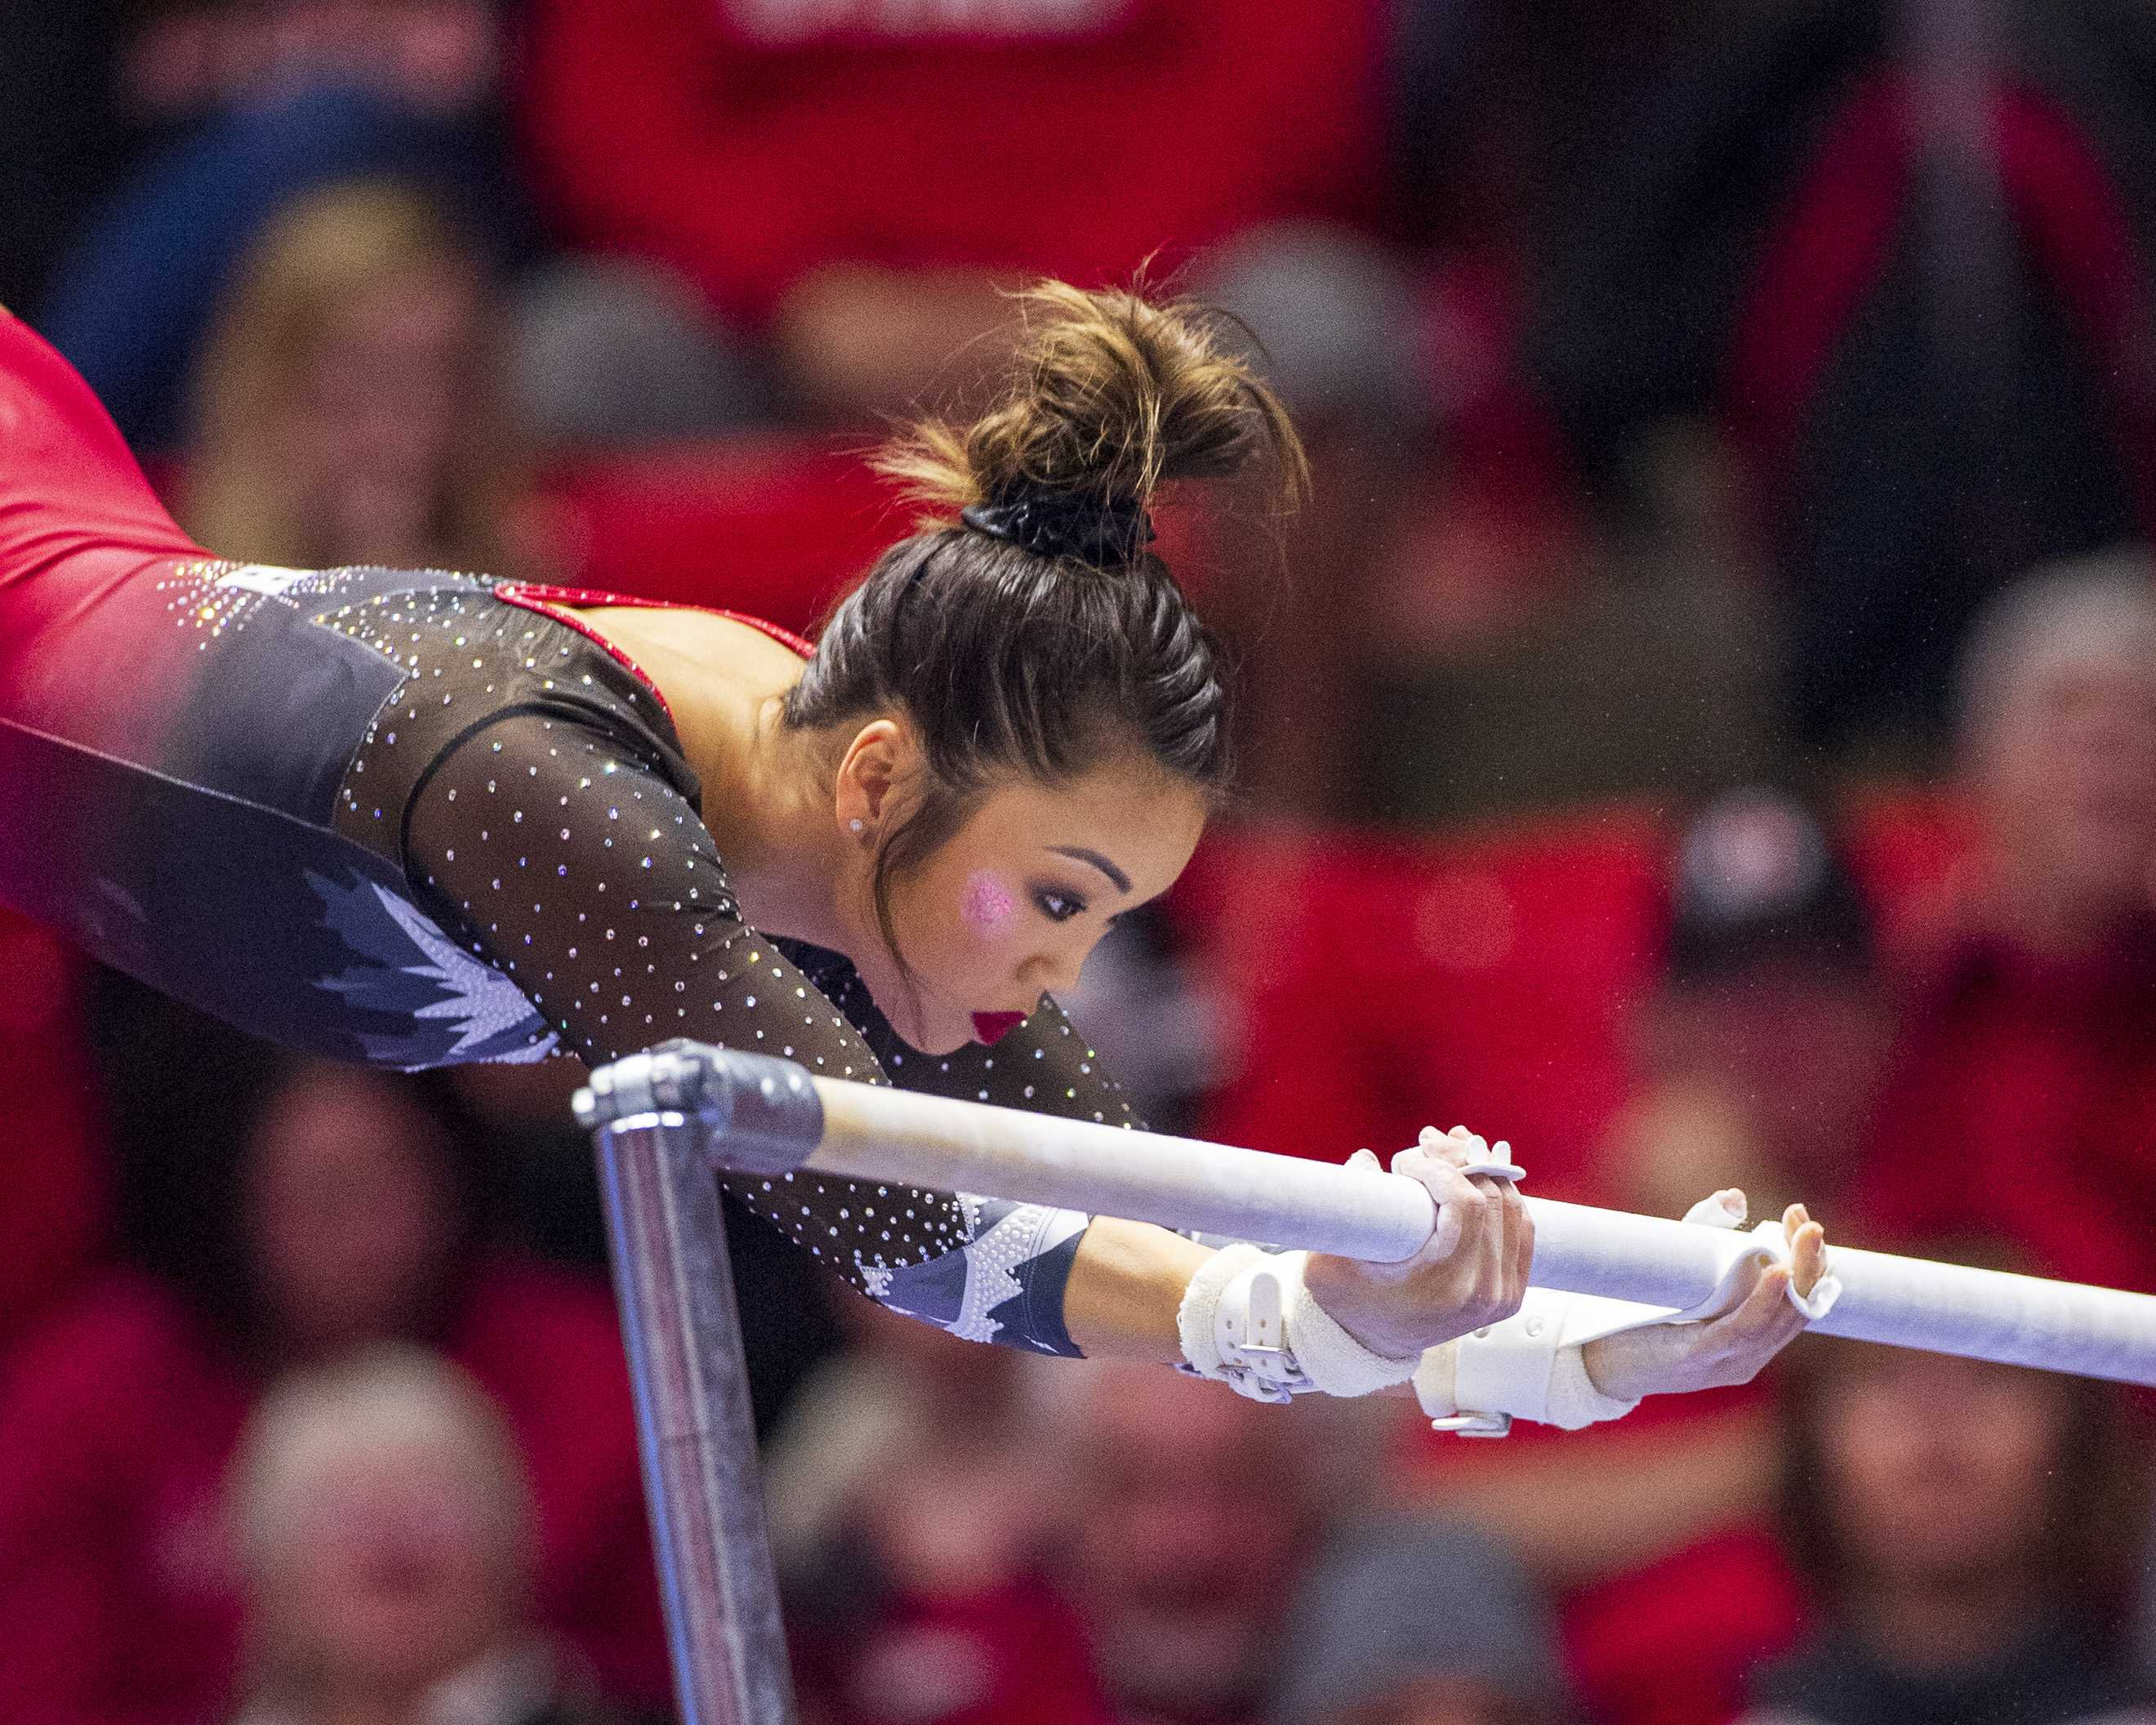 University of Utah women's gymnastics senior Kari Lee performs on the uneven bars in a dual meet vs. Penn State at the Jon M. Huntsman Center in Salt Lake City, Utah on Saturday, Jan. 5, 2019.  (Photo by Kiffer Creveling | The Daily Utah Chronicle)